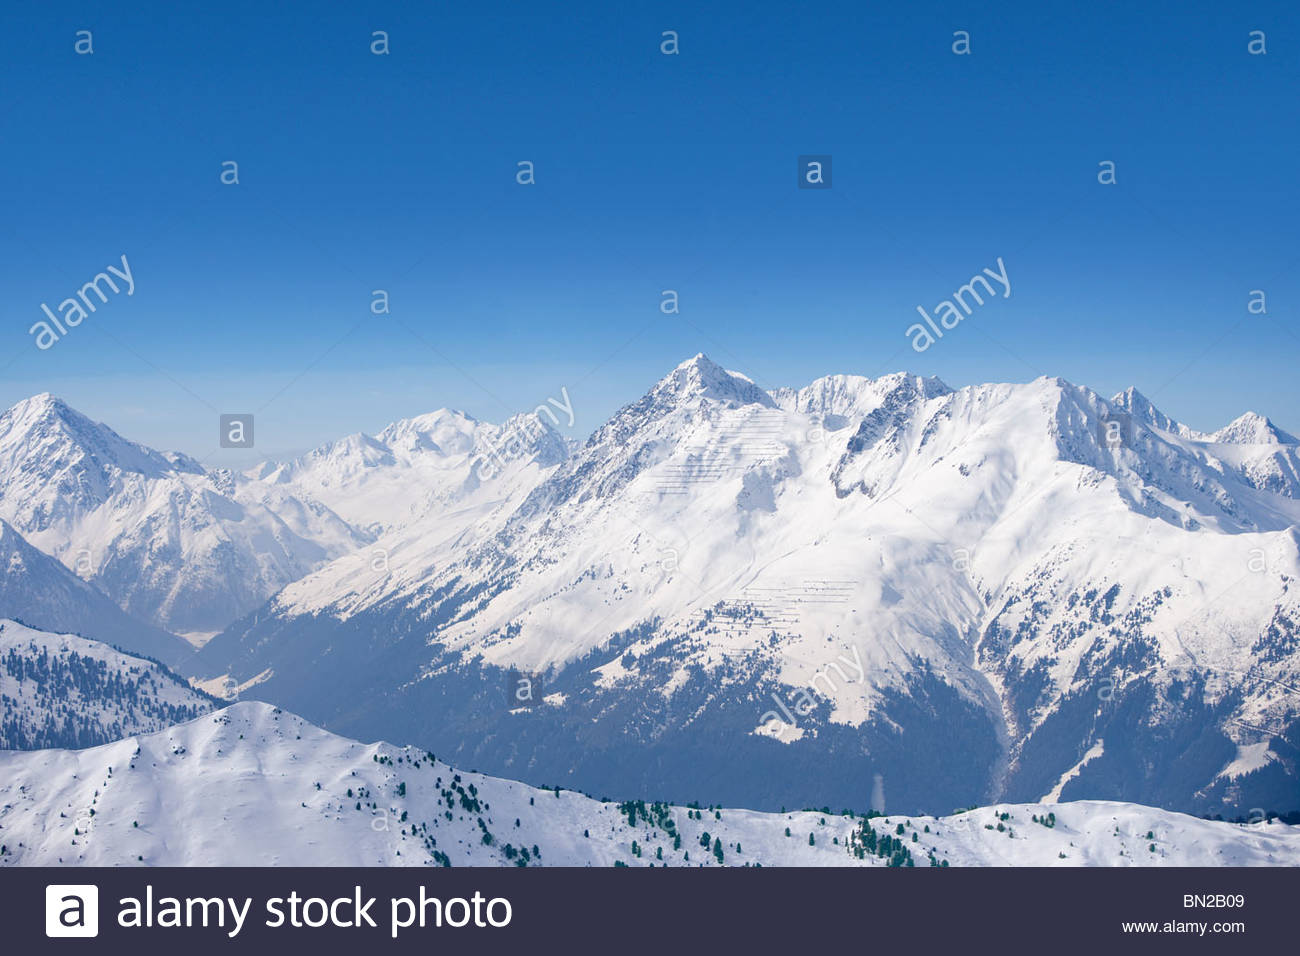 Snowy mountain range and blue sky - Stock Image